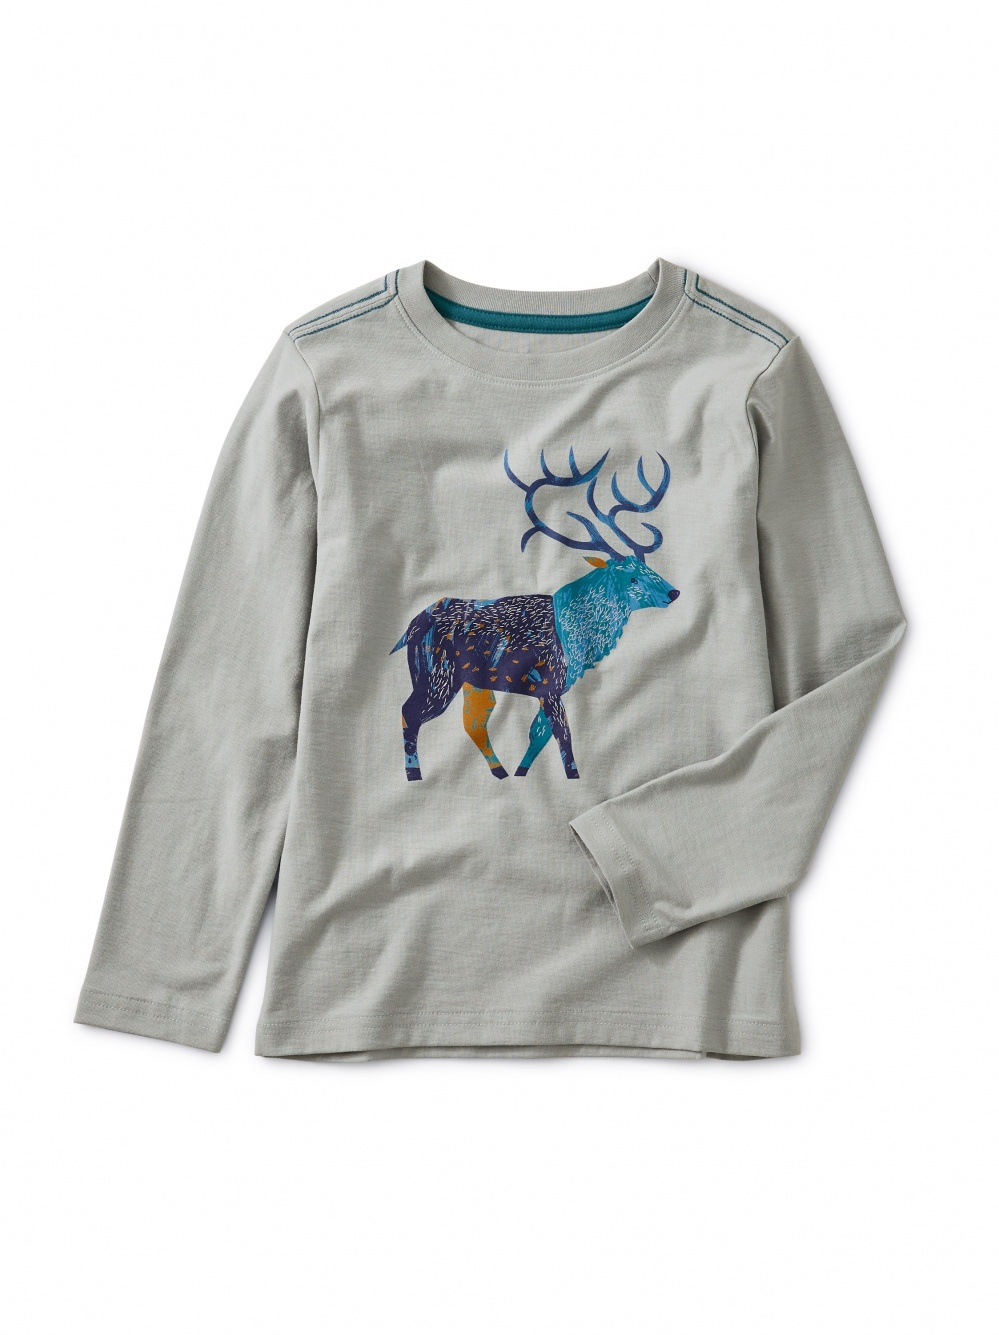 Stag Graphic Tee